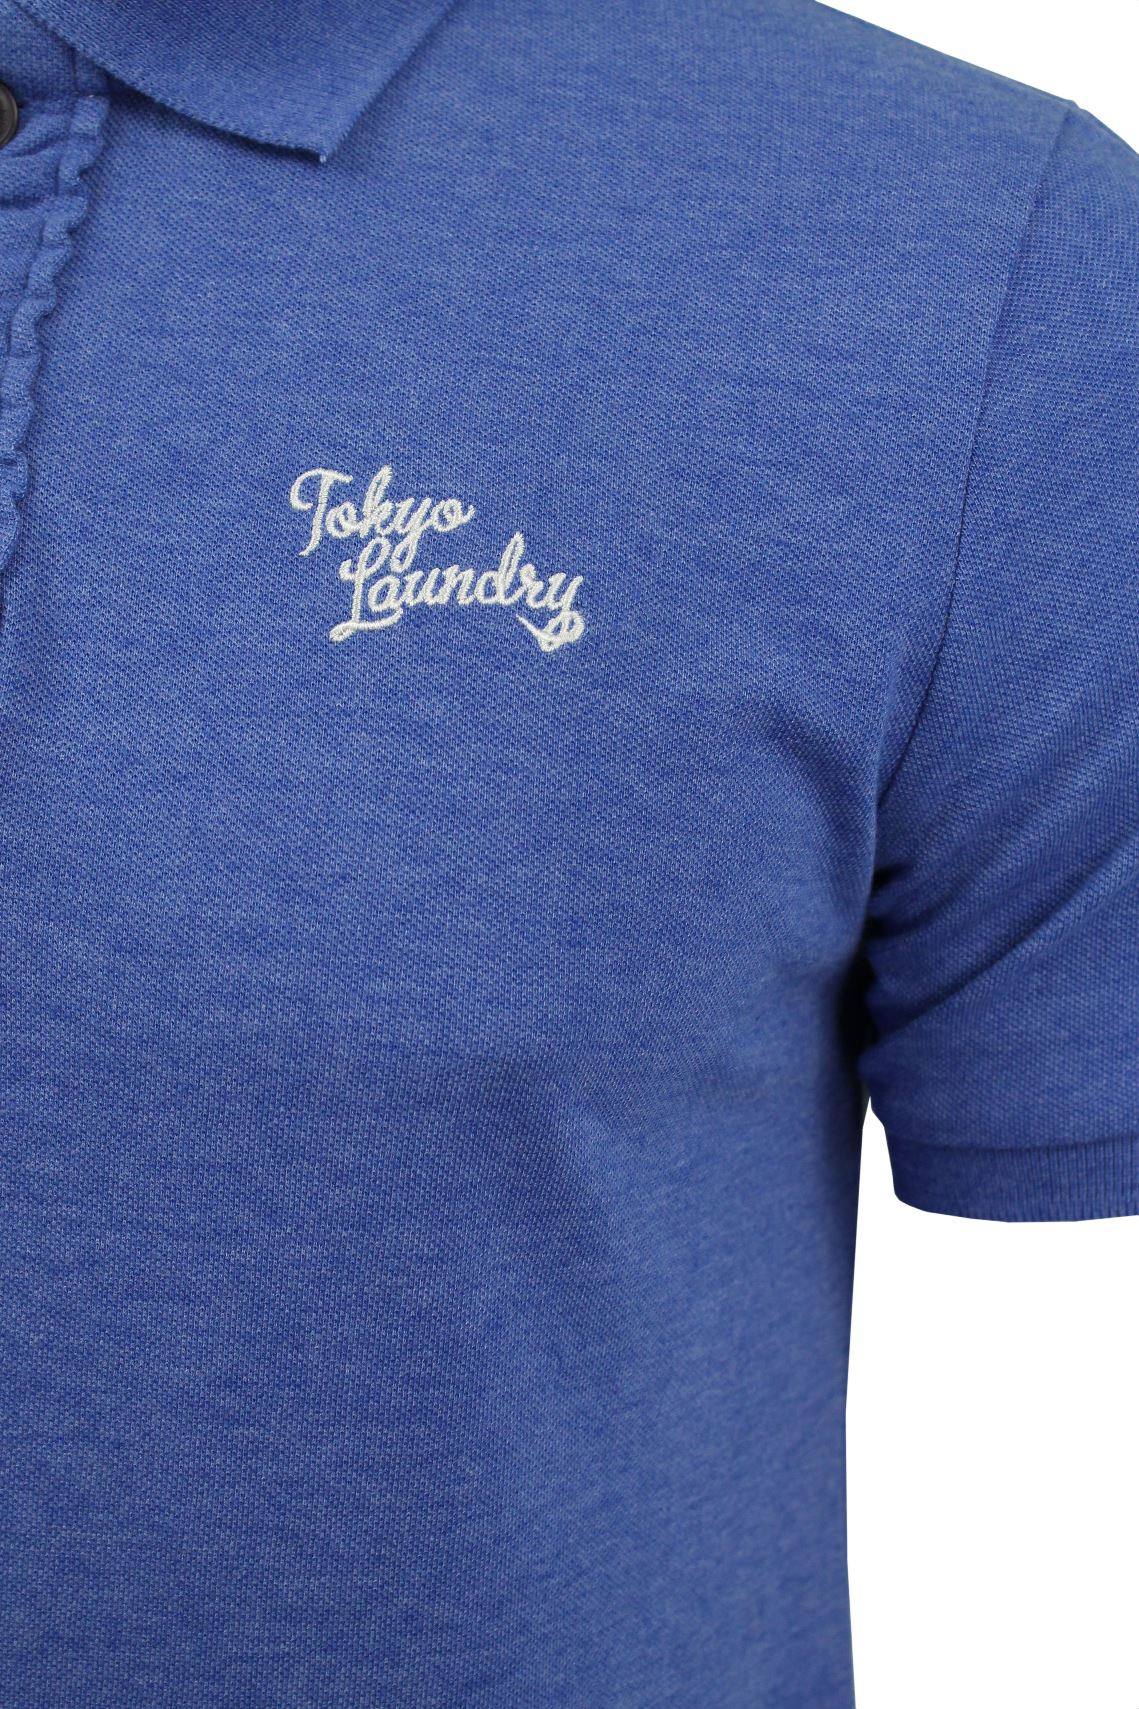 Mens Polo T-Shirt by Tokyo Laundry 'Rochester' Short Sleeved-2